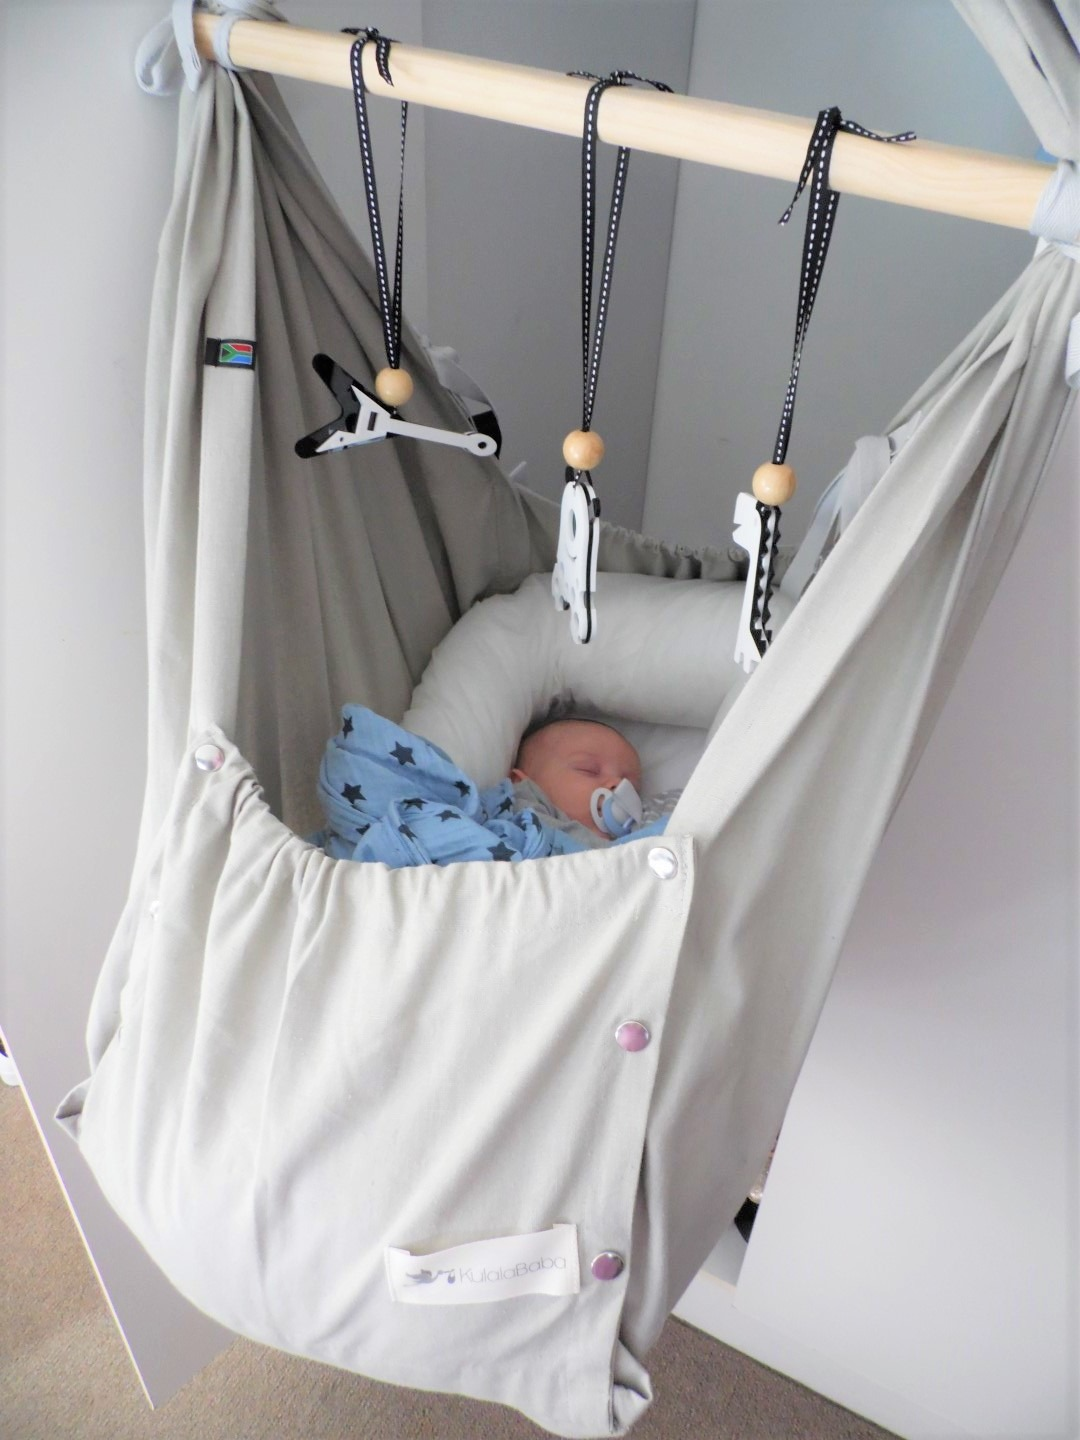 kulala baba organic hammock   by megan kelly bedtime with kulala baba organic hammock   by megan kelly  rh   bymegankelly co za